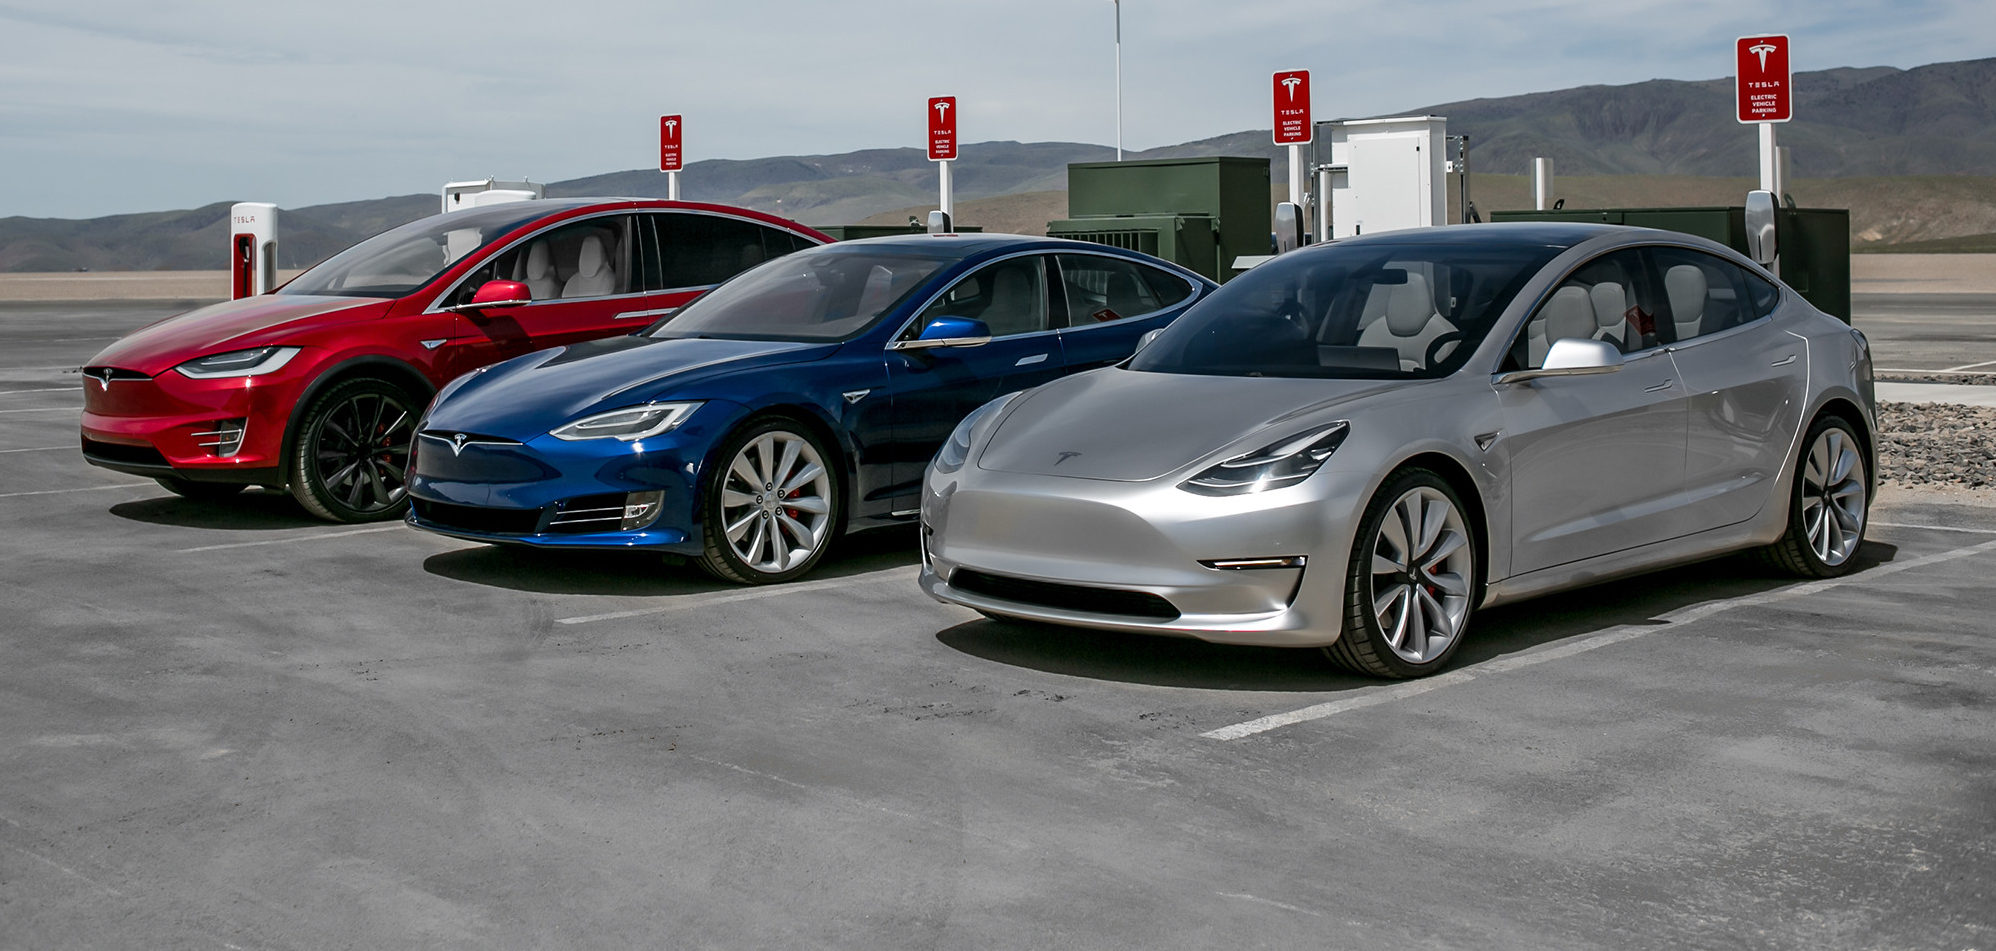 Tesla S Electric Cars Are Well Loved By Owners But Service Network Needs Work Survey